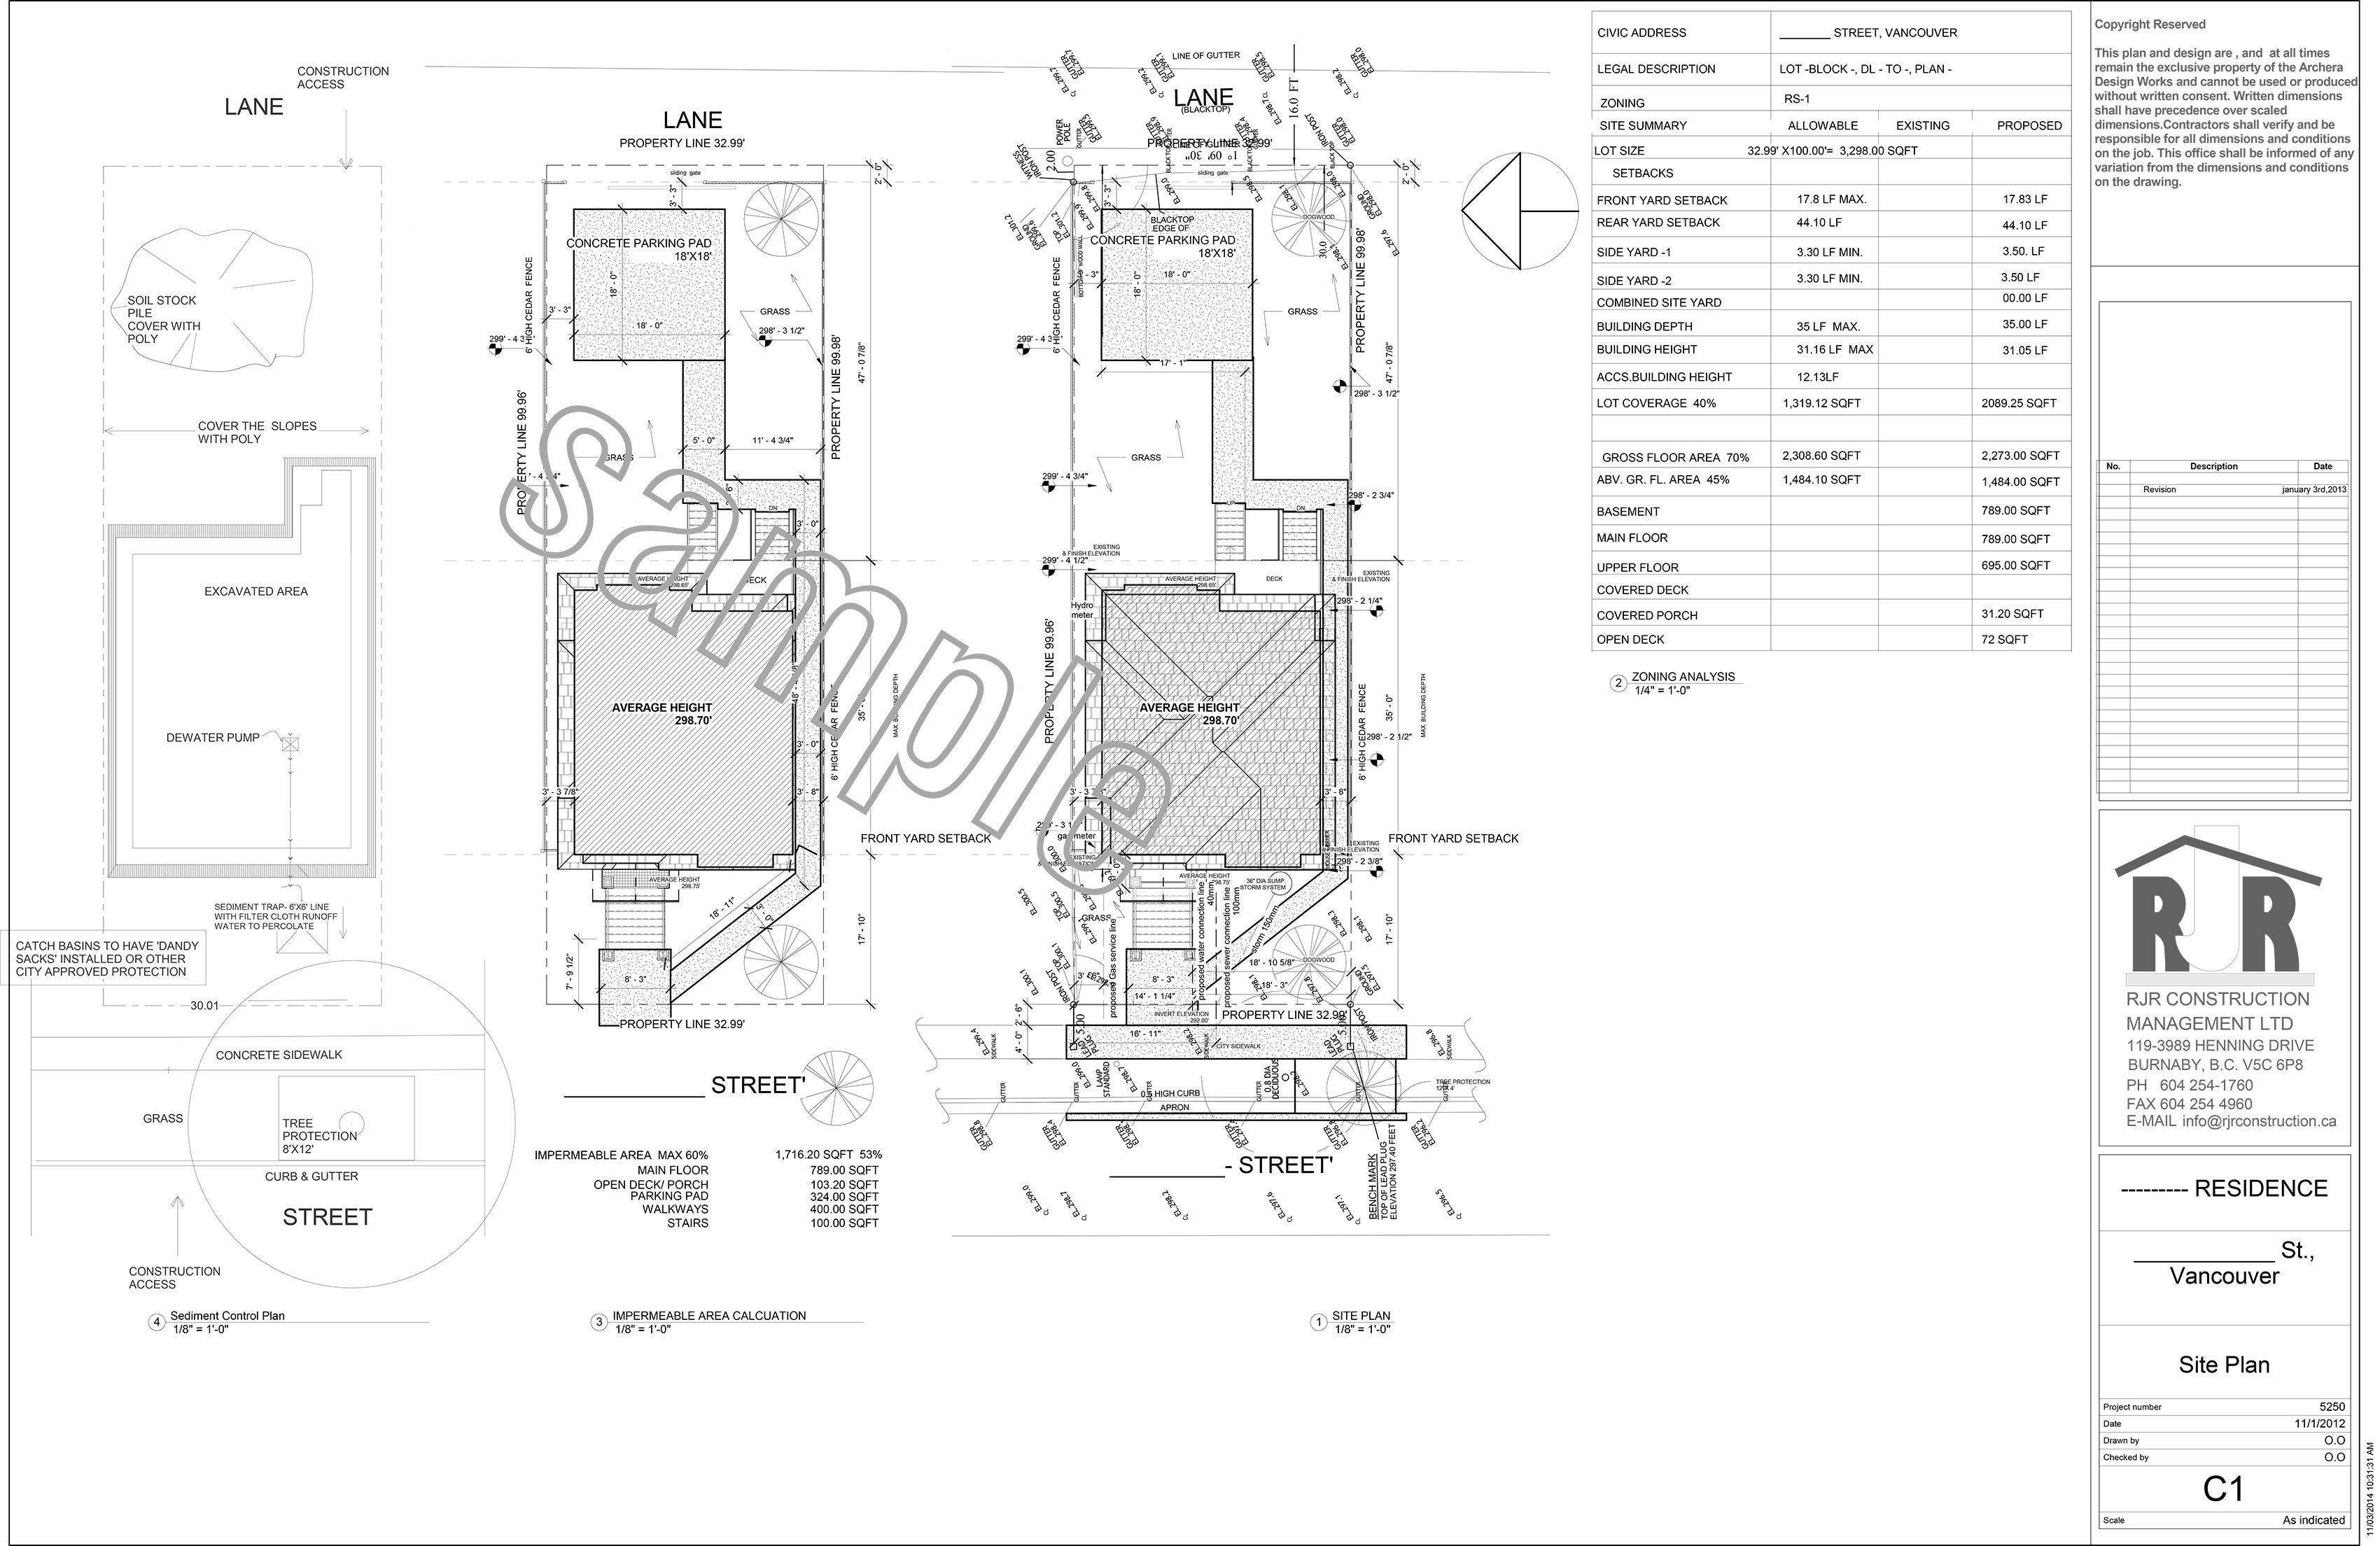 Sample drawings rjr construction group vancouver for Site plan drawing online